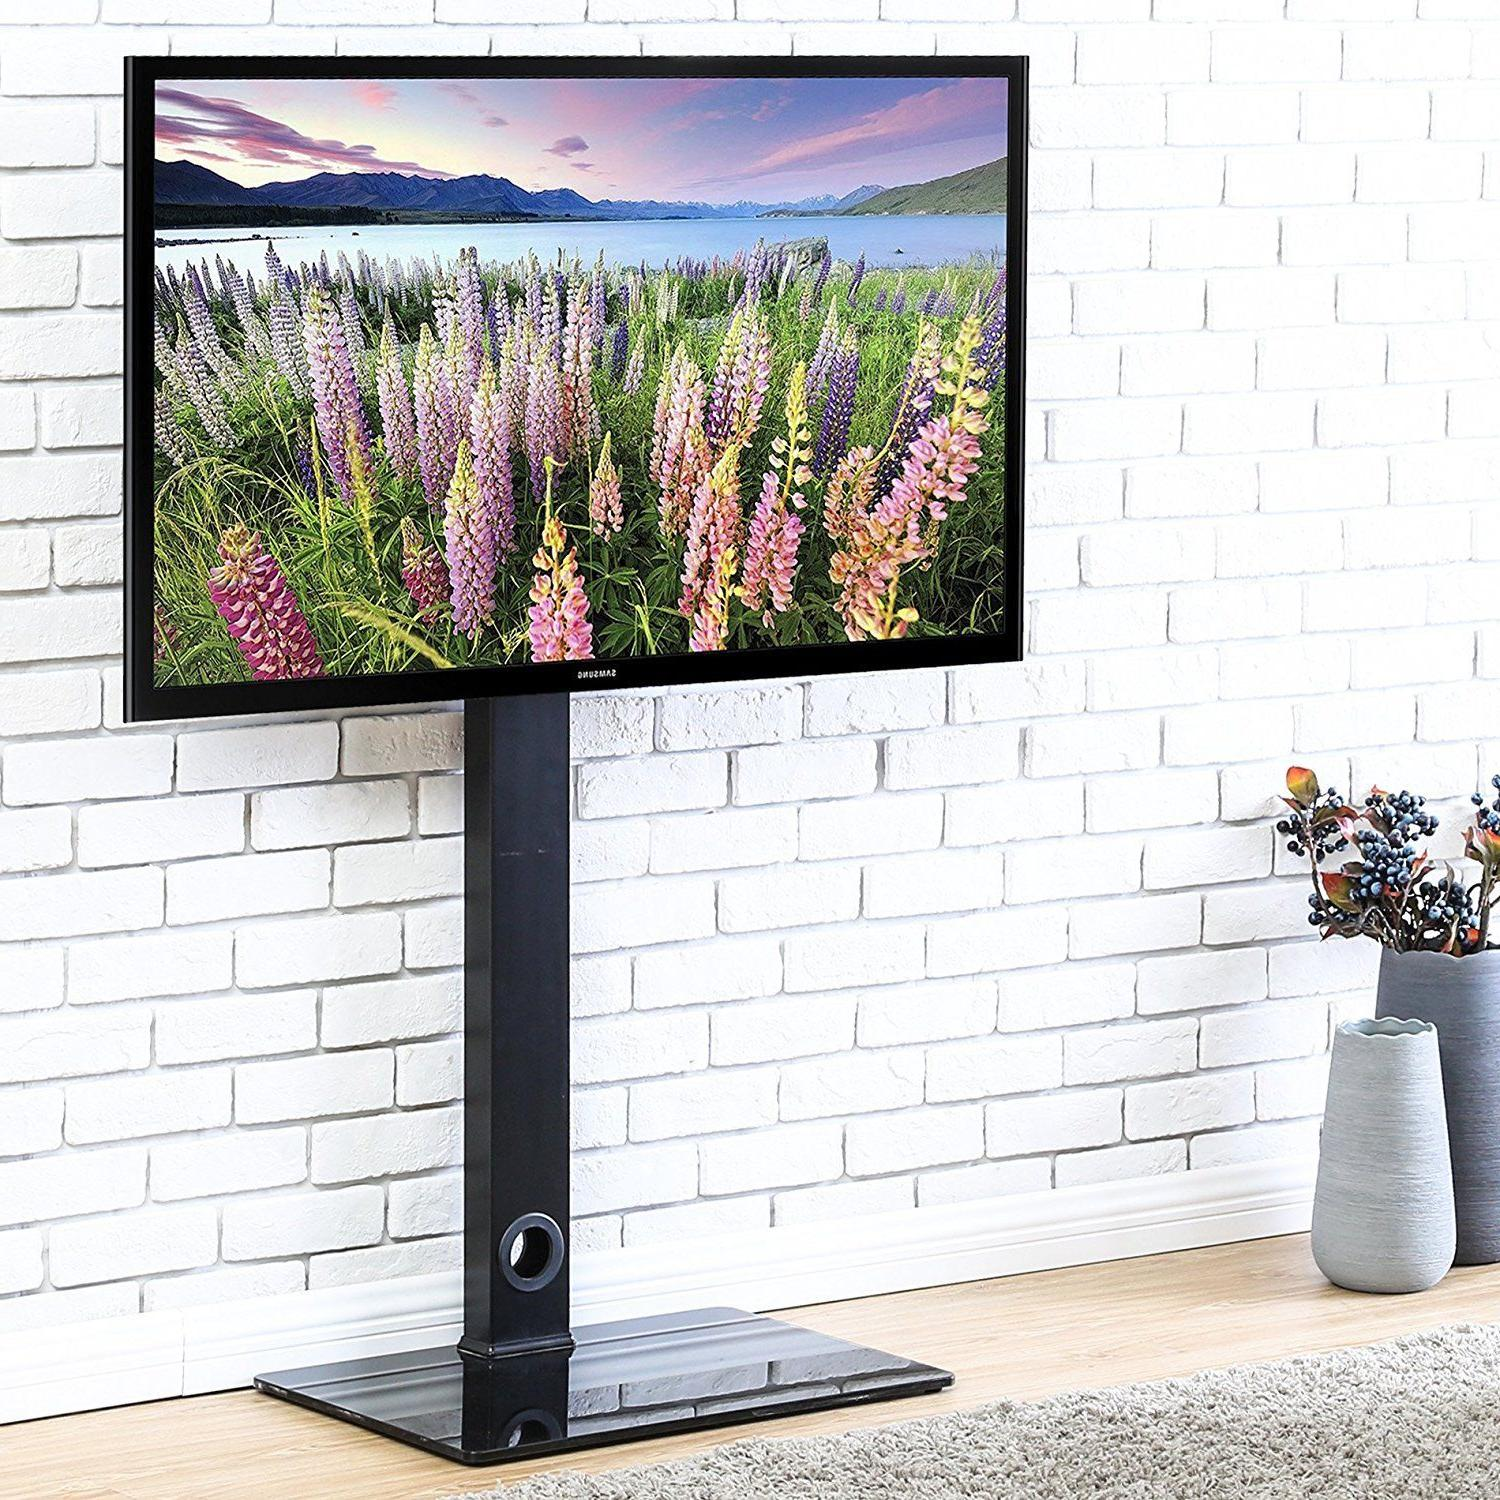 FITUEYES Universal TV Stand Base with Swivel Mount Height Ad